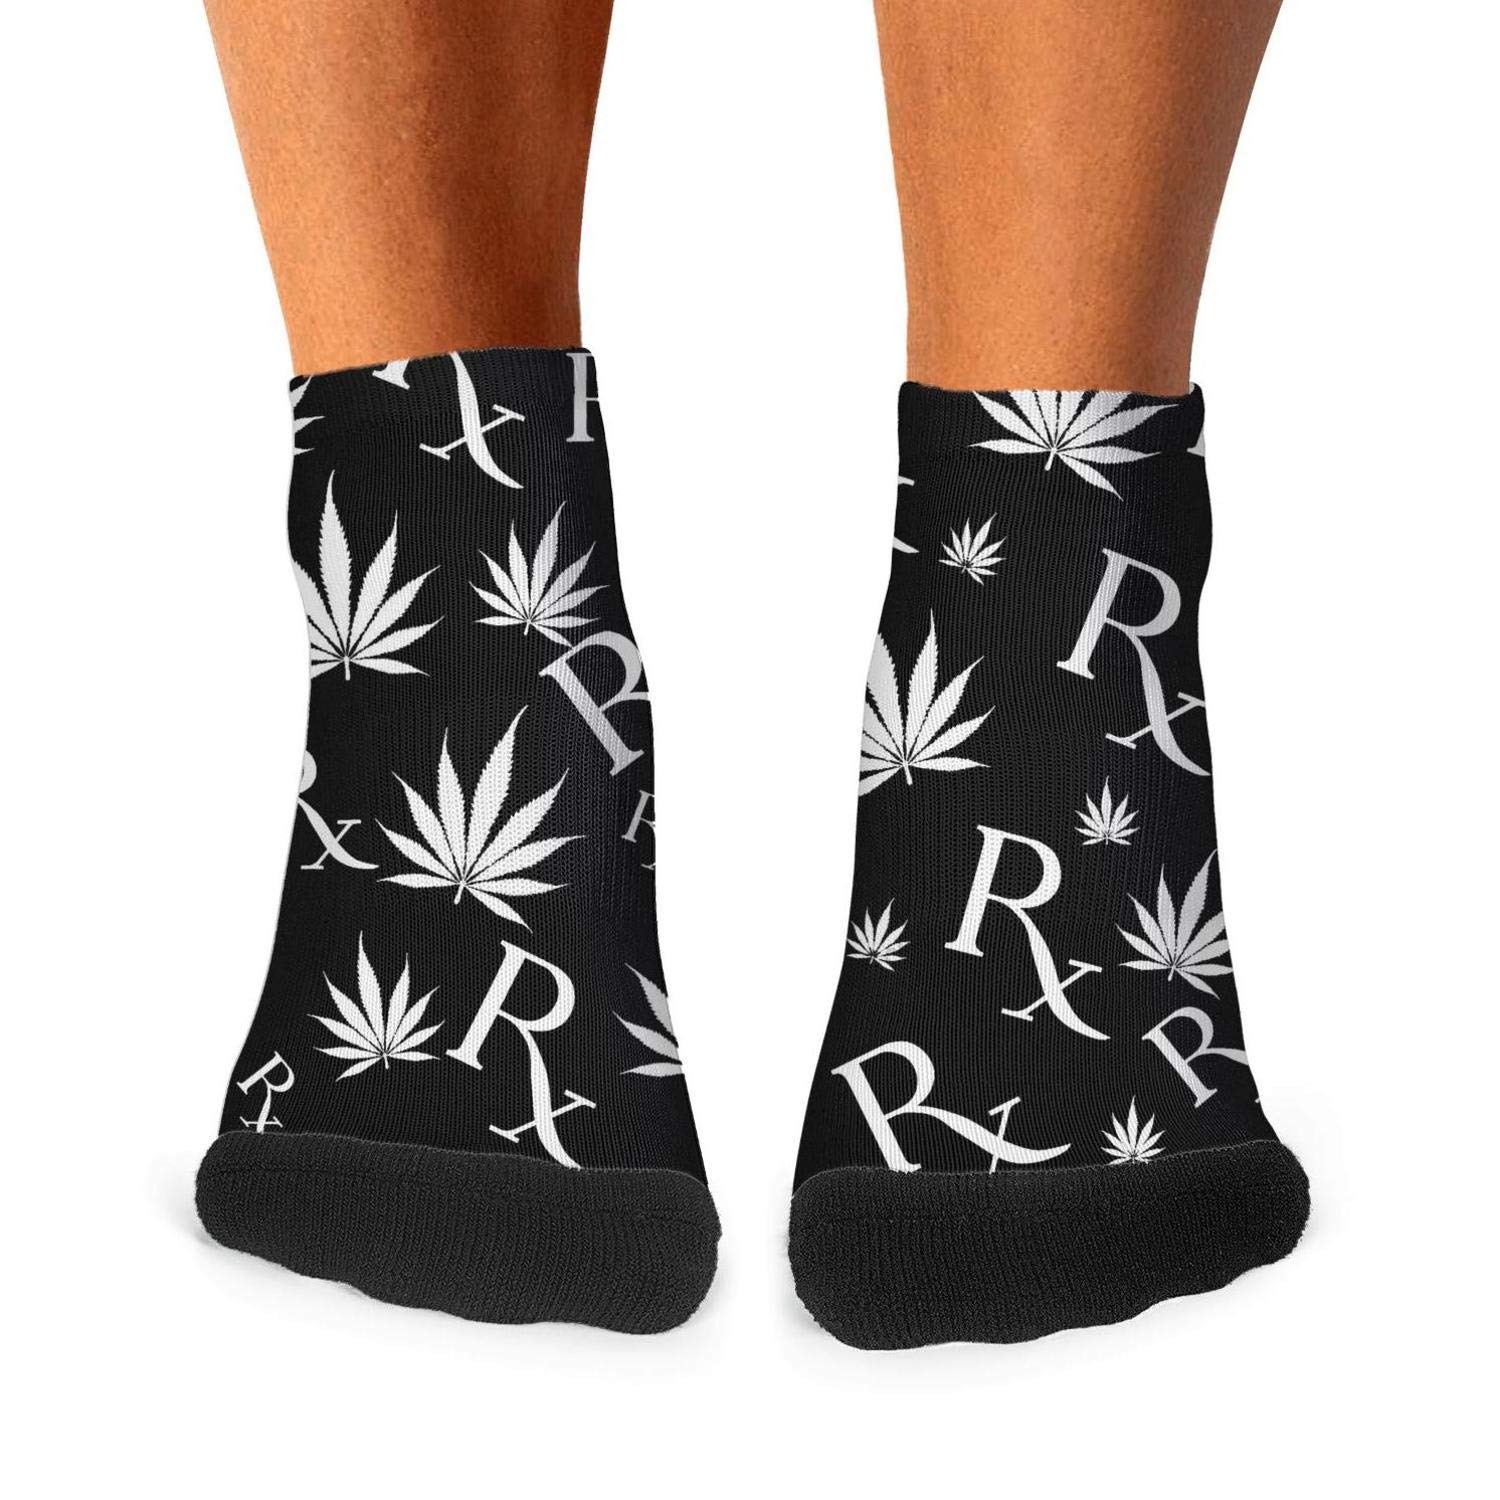 Floowyerion Mens Black White Marijuana Leaf And Prescription Symbol Novelty Sports Socks Crazy Funny Crew Tube Socks